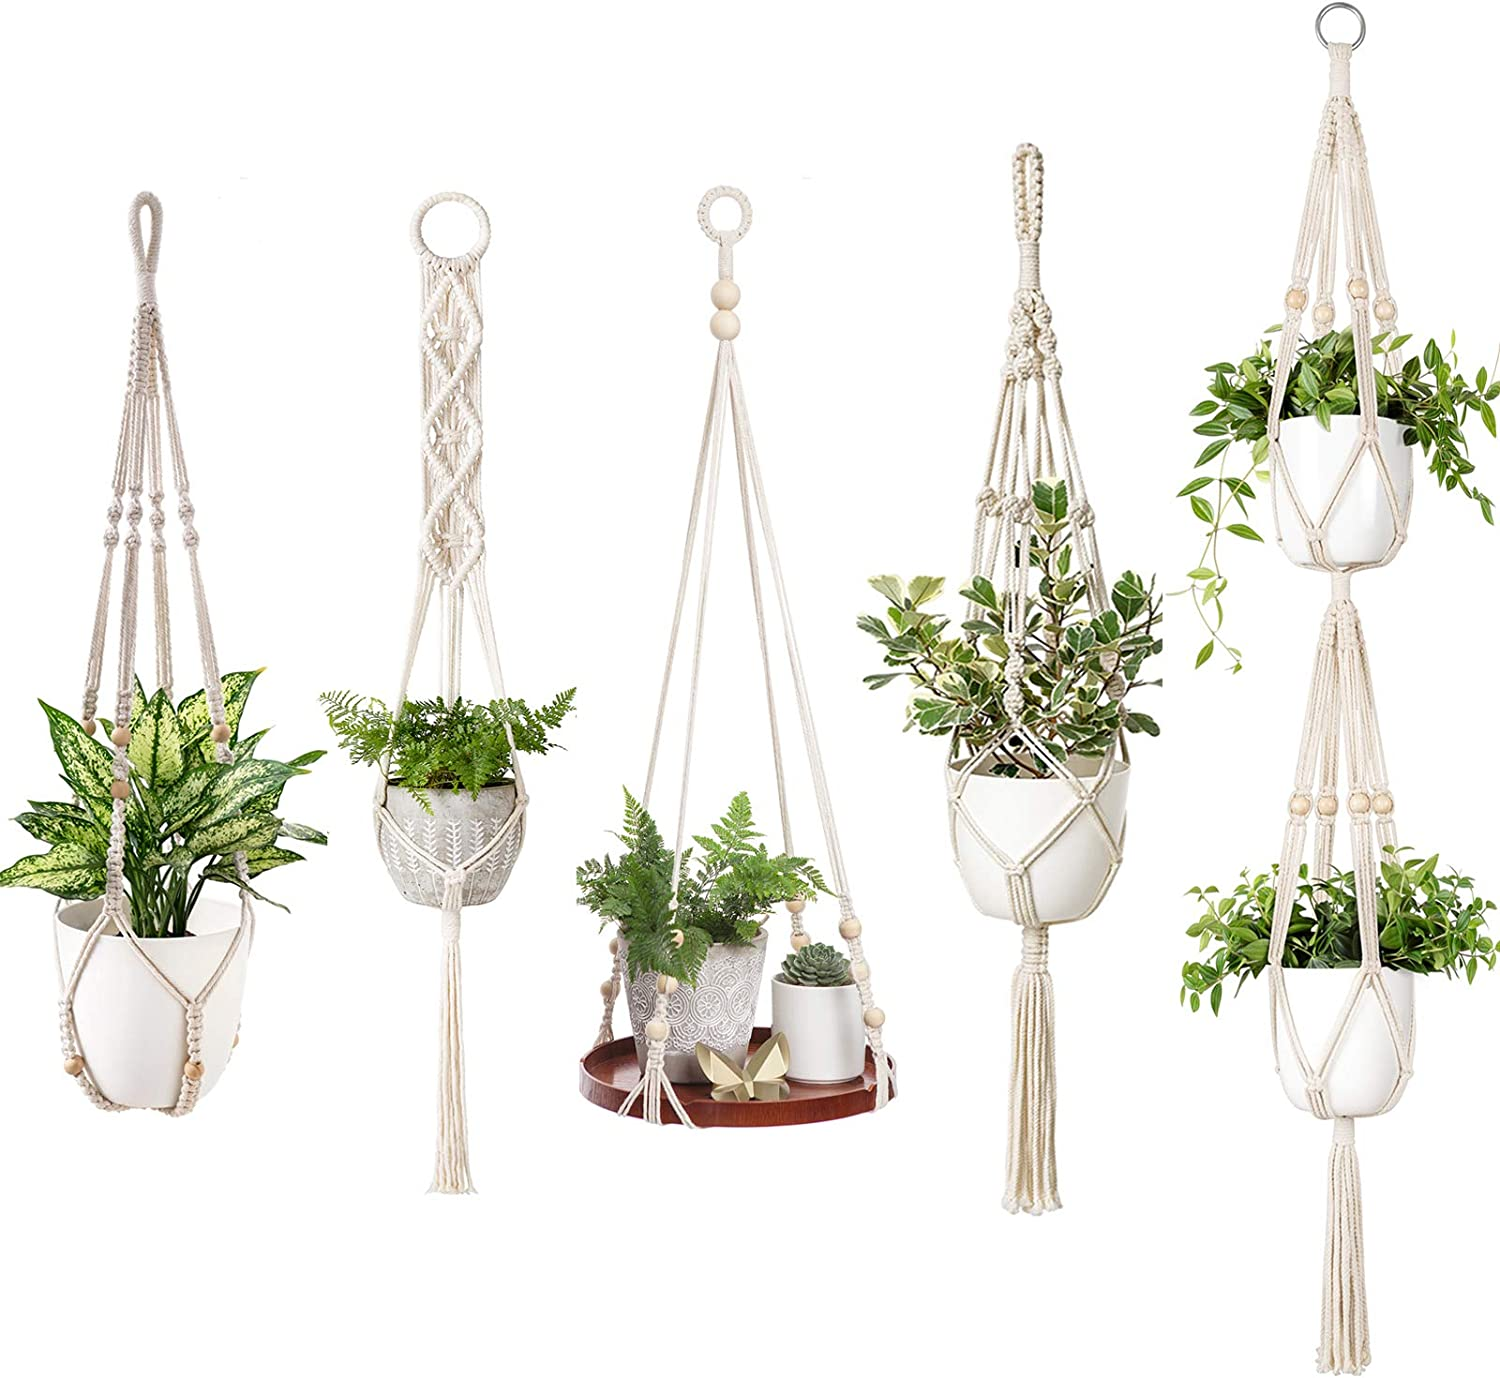 Mkono 5 Pack Macrame Plant Hangers Hanging Plant Shelf Indoor Wall Planter Decorative Flower Pot Holder Boho Home Decor Different Style